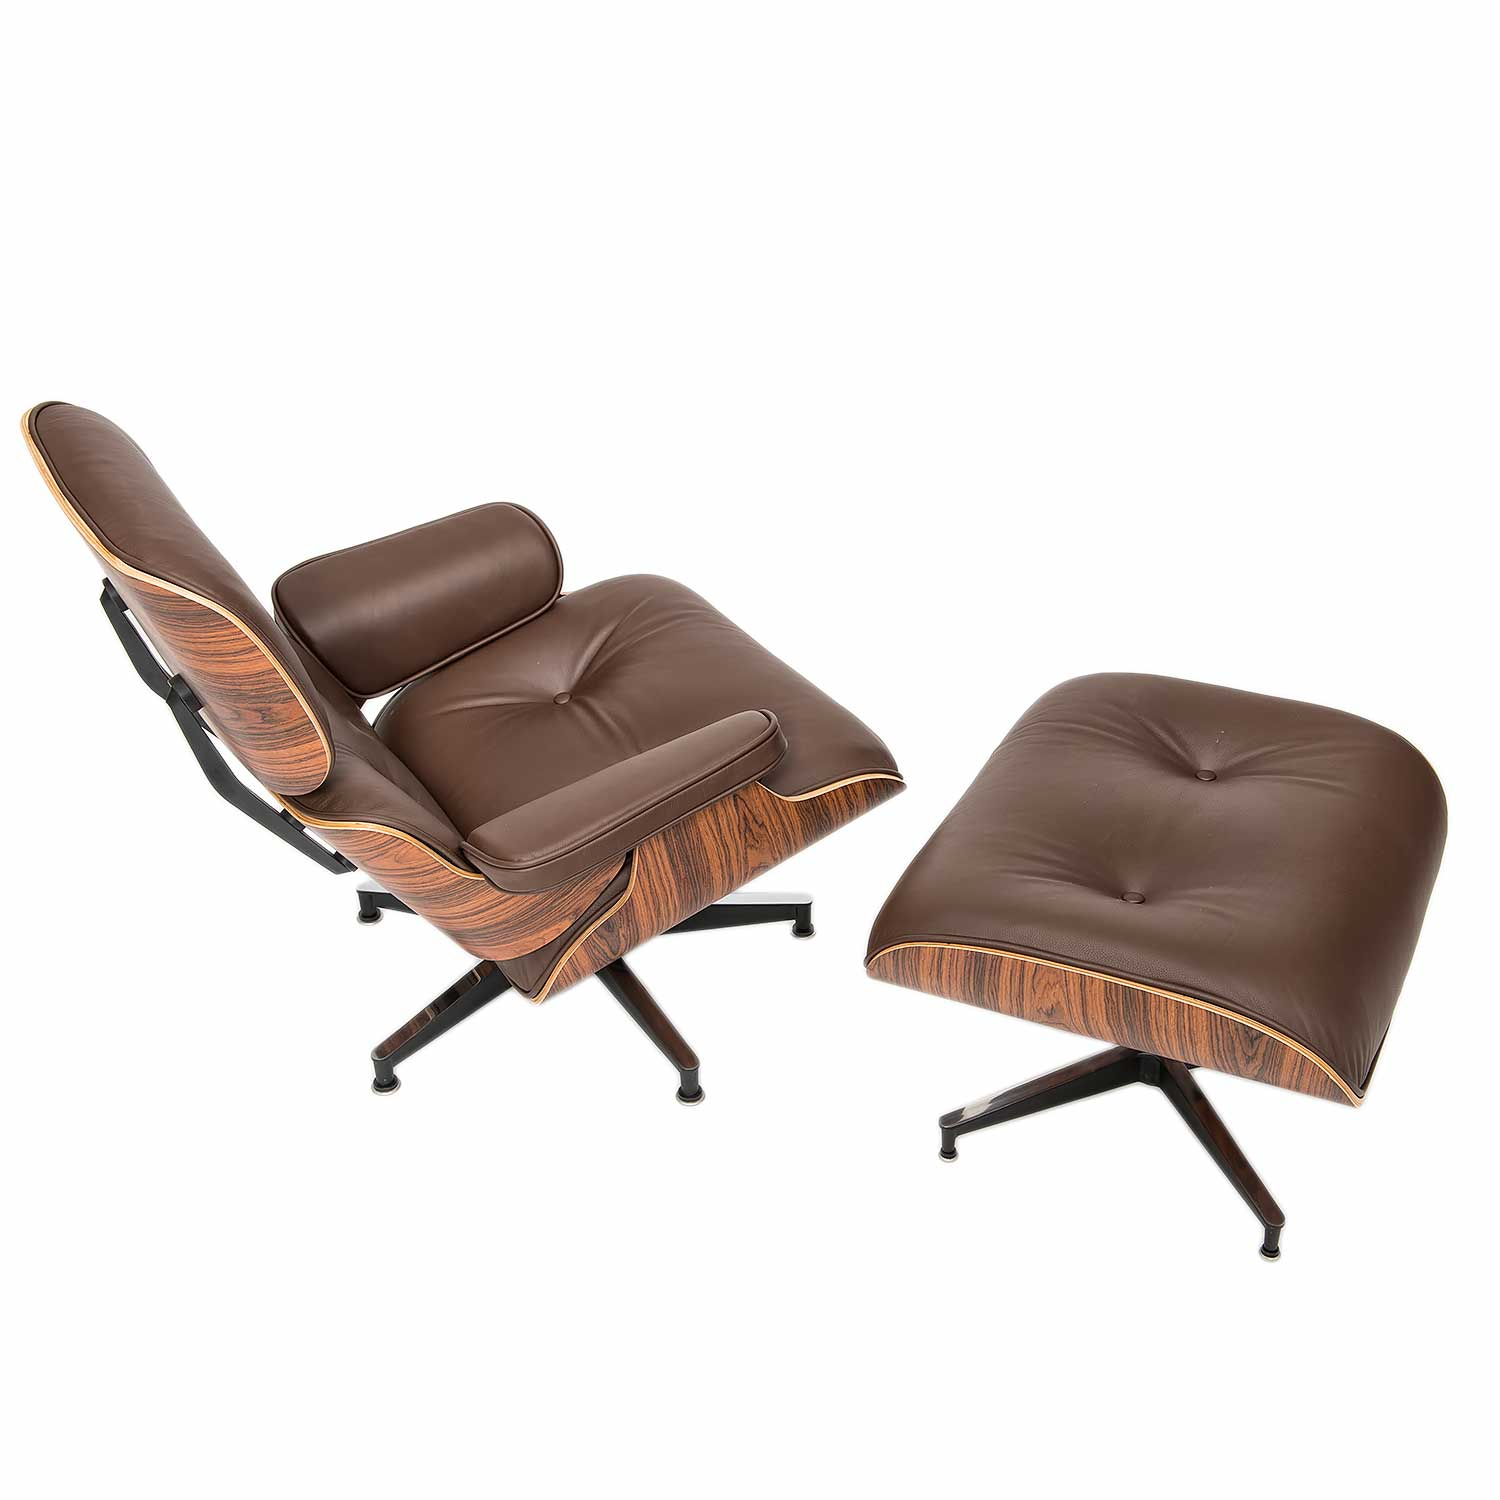 eames designed lounge chair with ottoman a steelform design classic. Black Bedroom Furniture Sets. Home Design Ideas